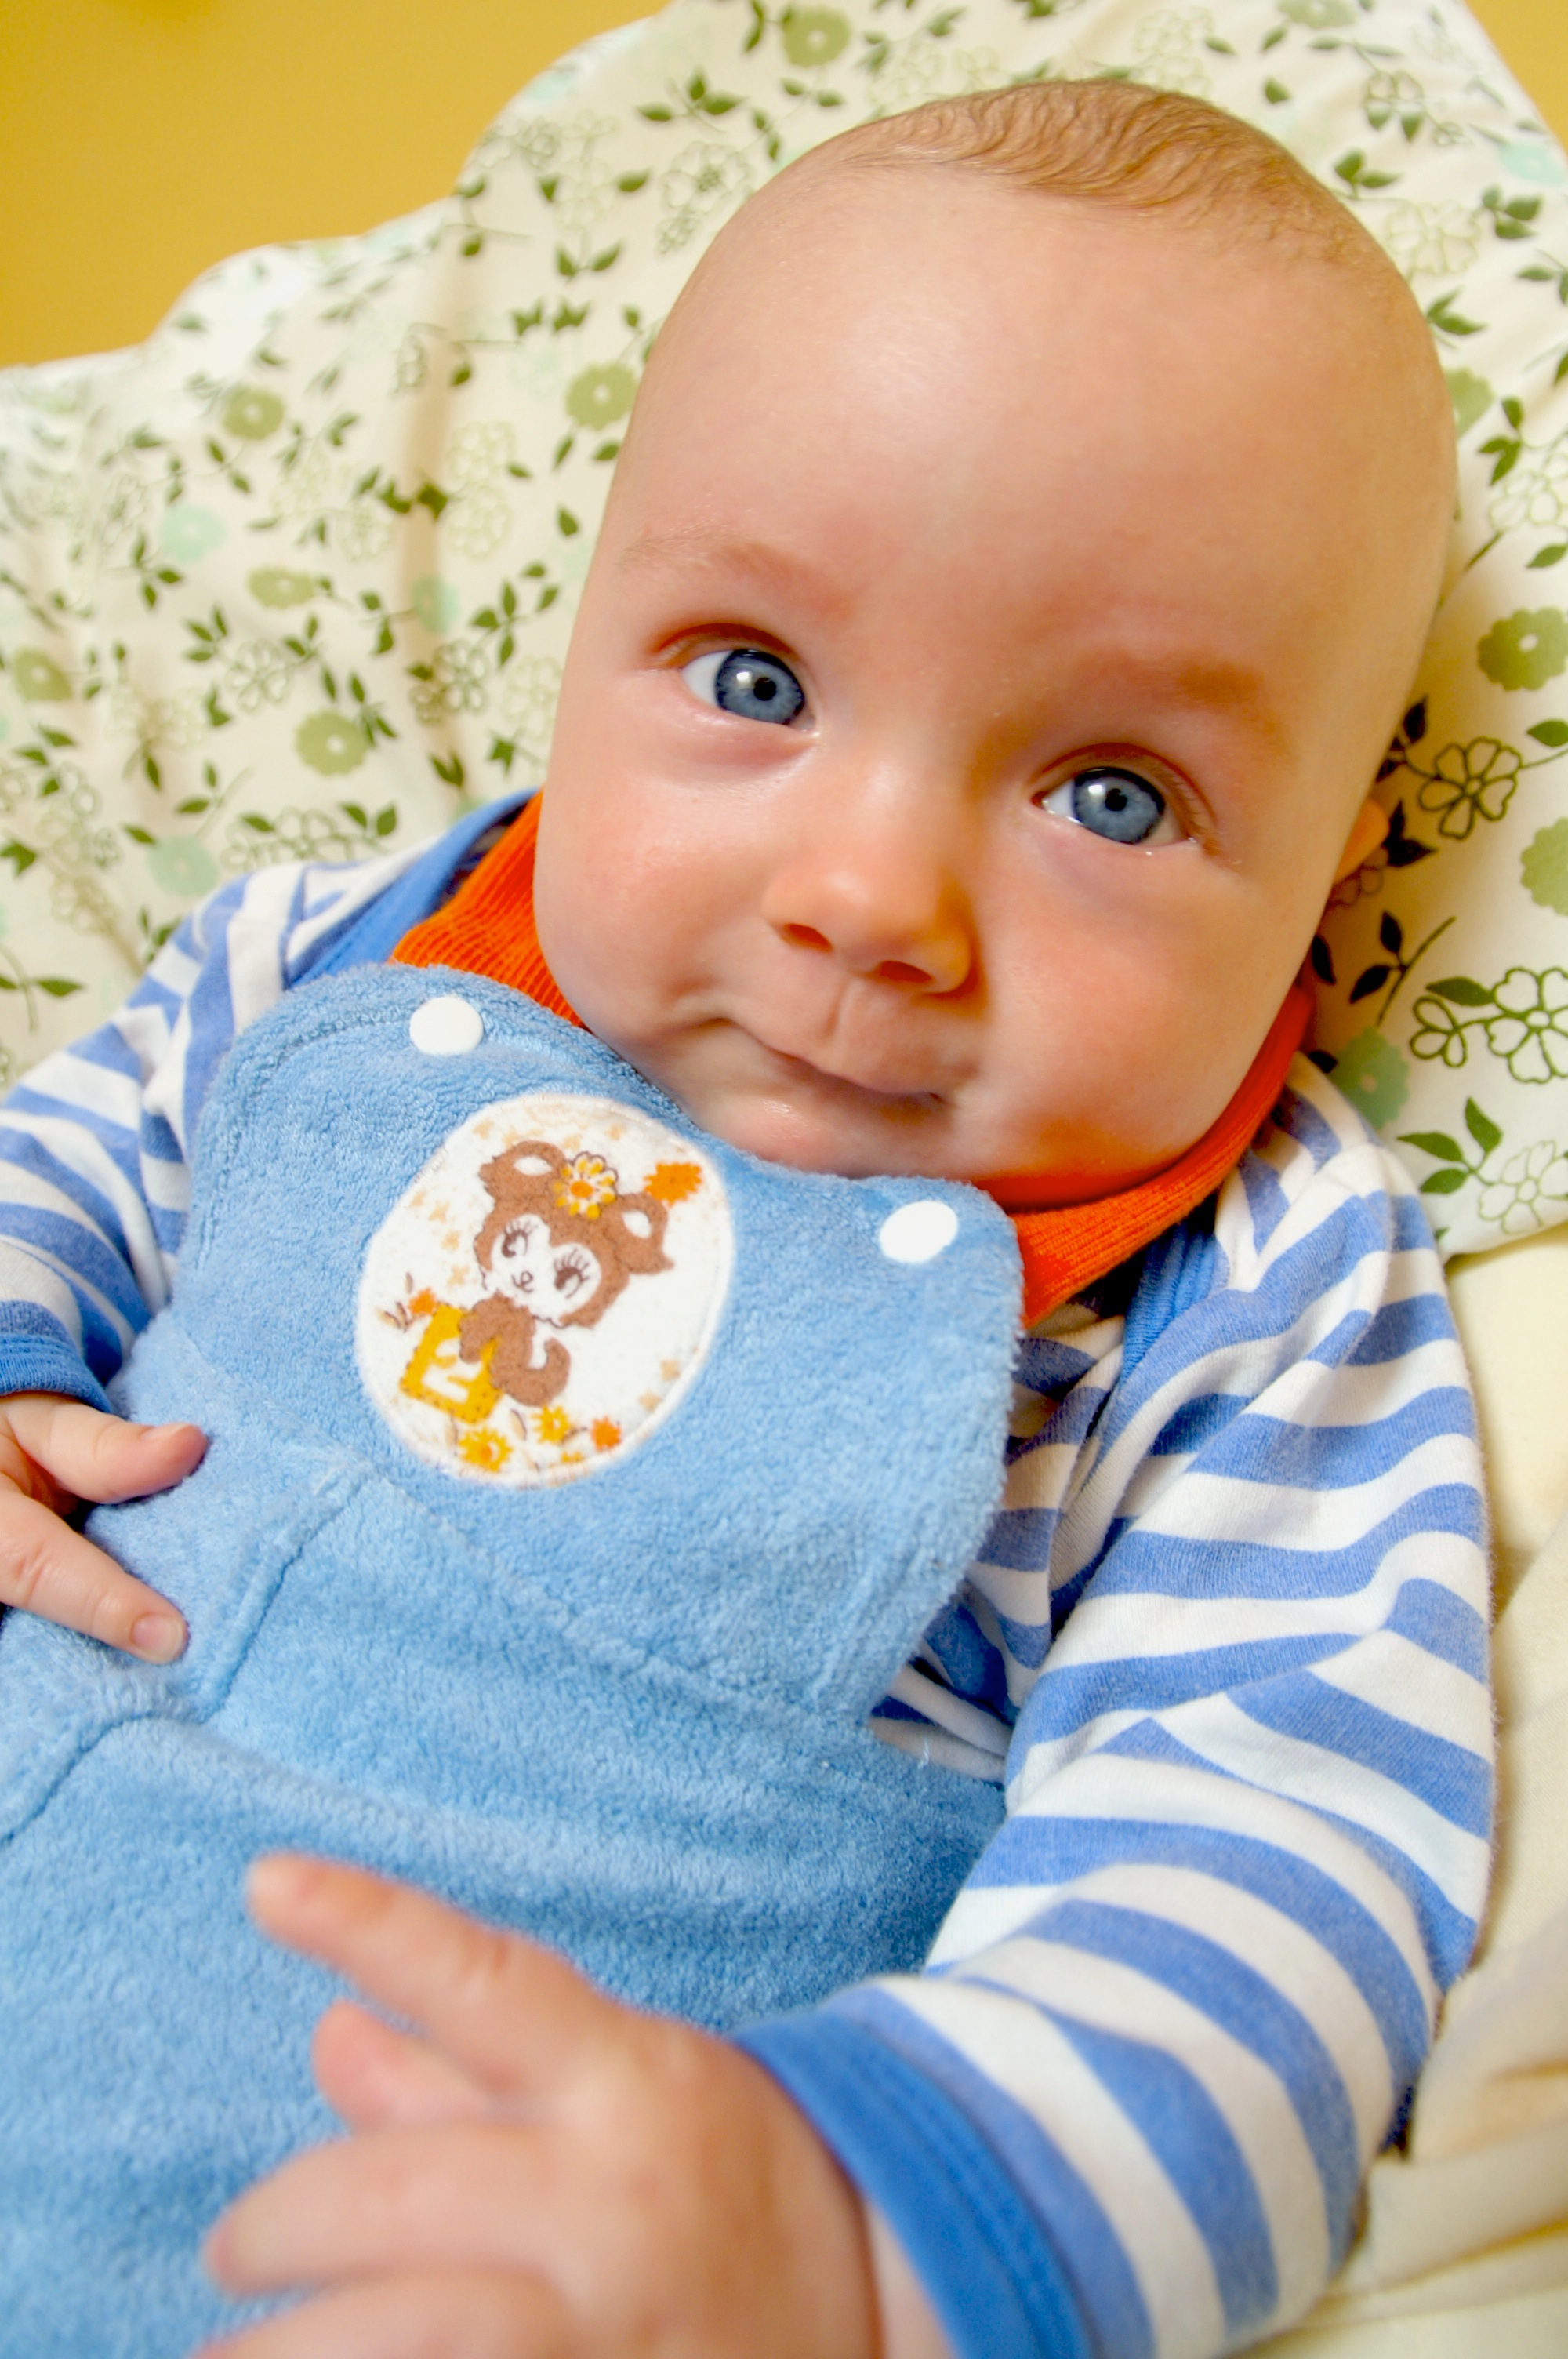 My favourite little baby outfit I ever made for Neko was this blue towelling number. It was pretty fantastically retro with it's bright orange straps and cuffs.